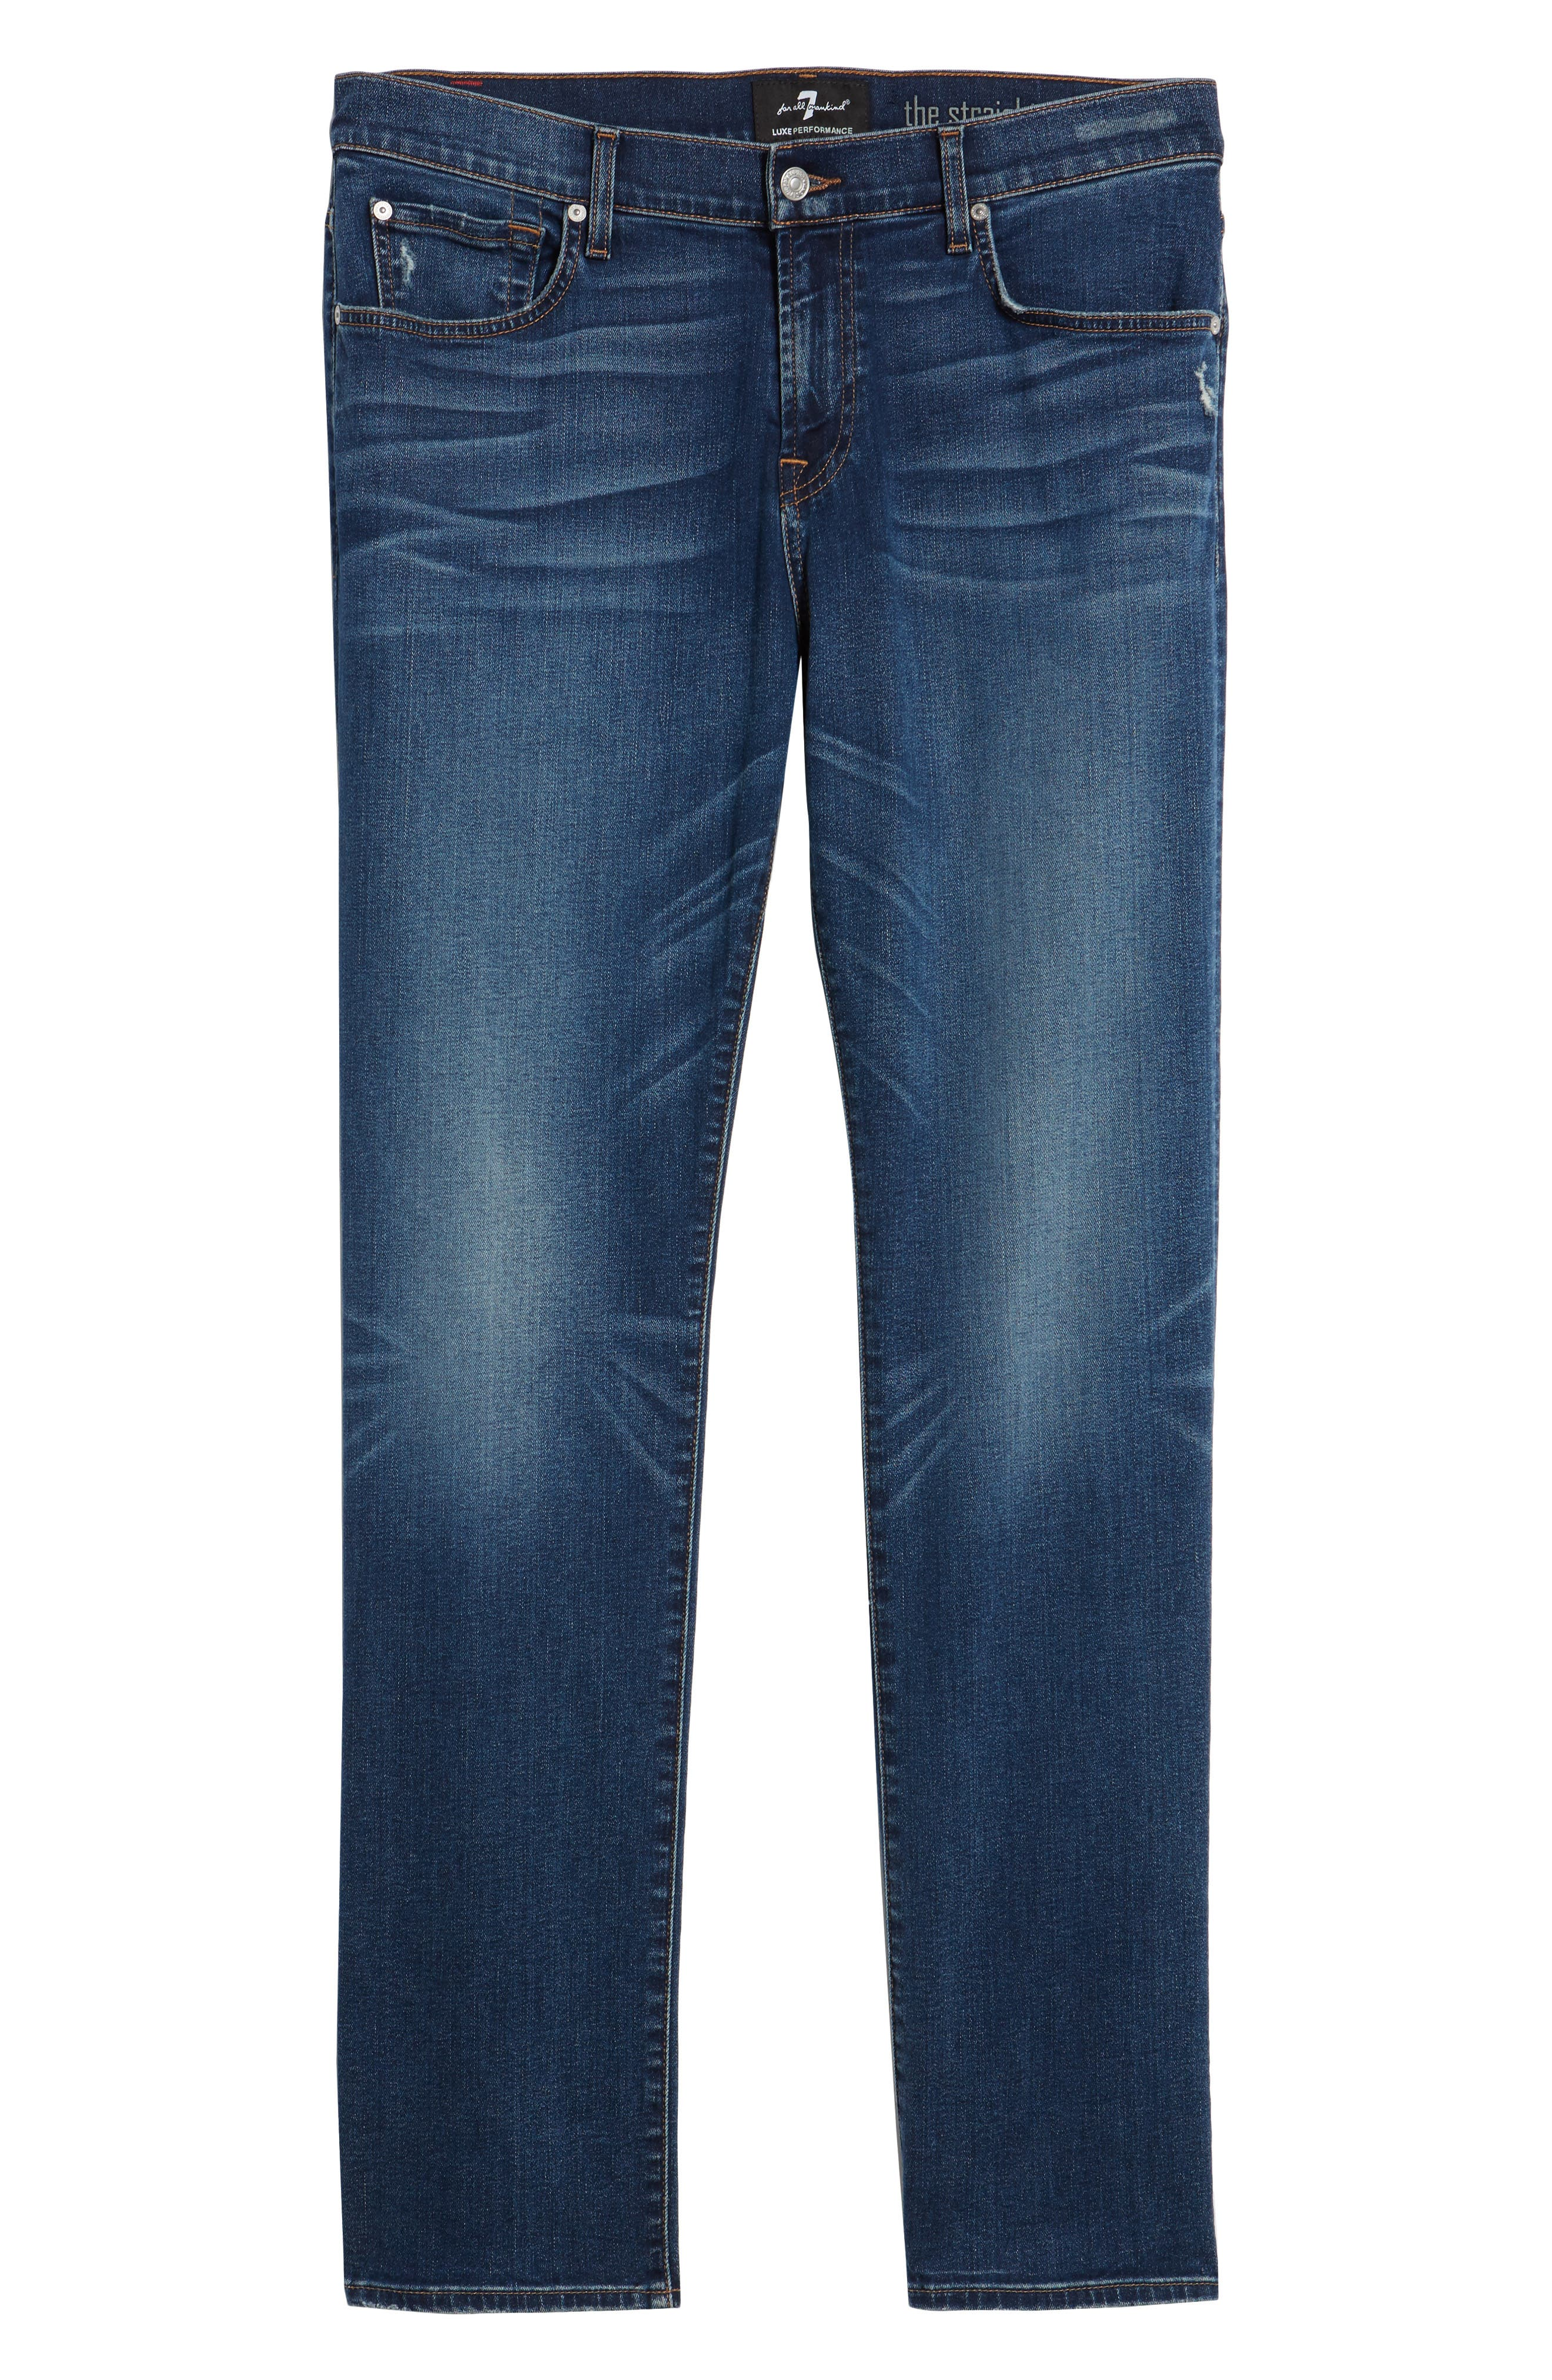 The Straight - Luxe Performance Slim Straight Leg Jeans,                             Alternate thumbnail 6, color,                             LUXE PERFORMANCE UNION